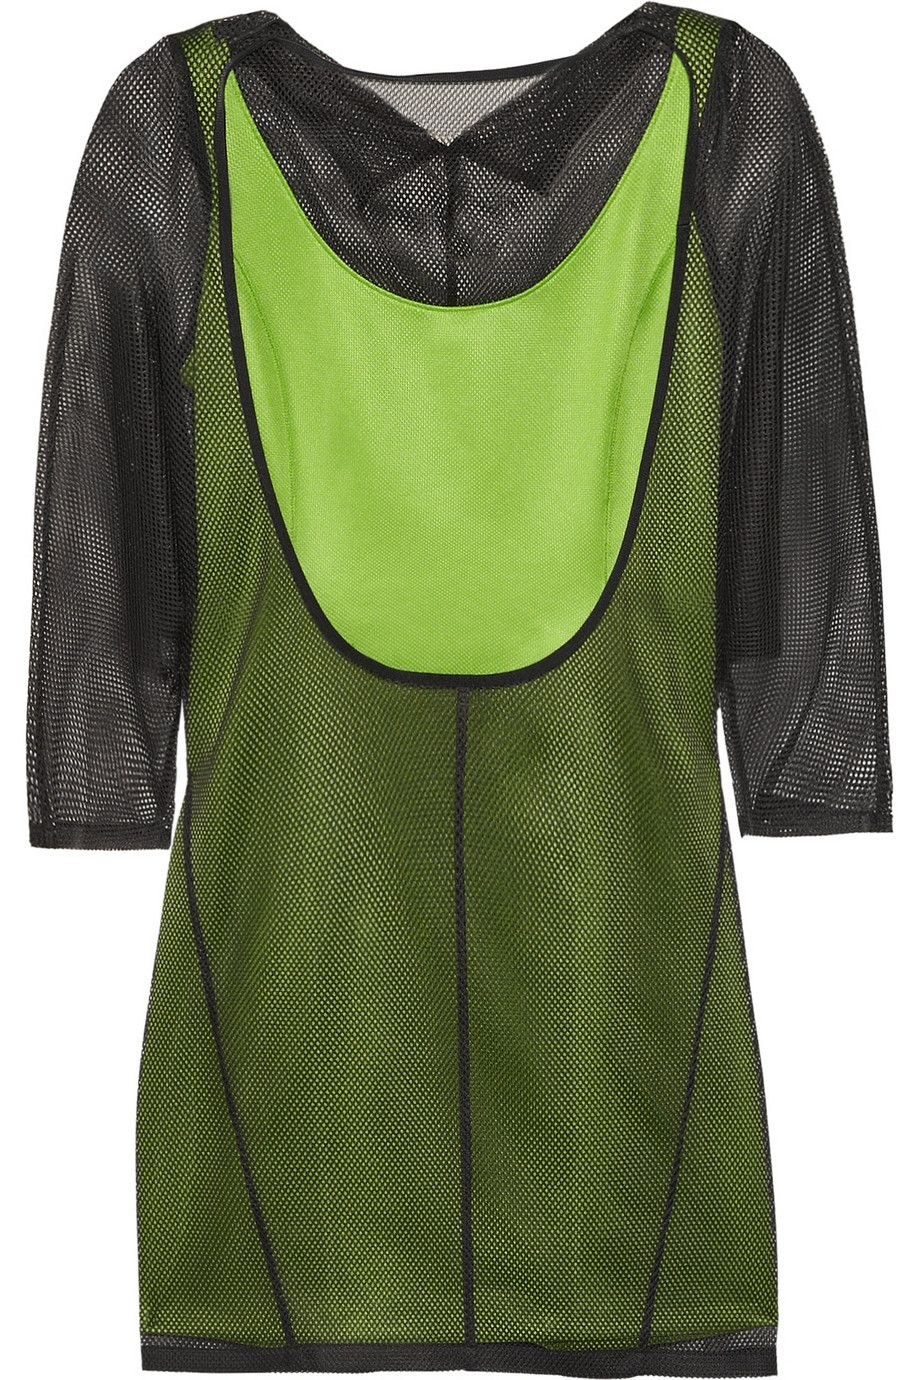 Junya WatanabeLayered mesh and neon jersey mini dress